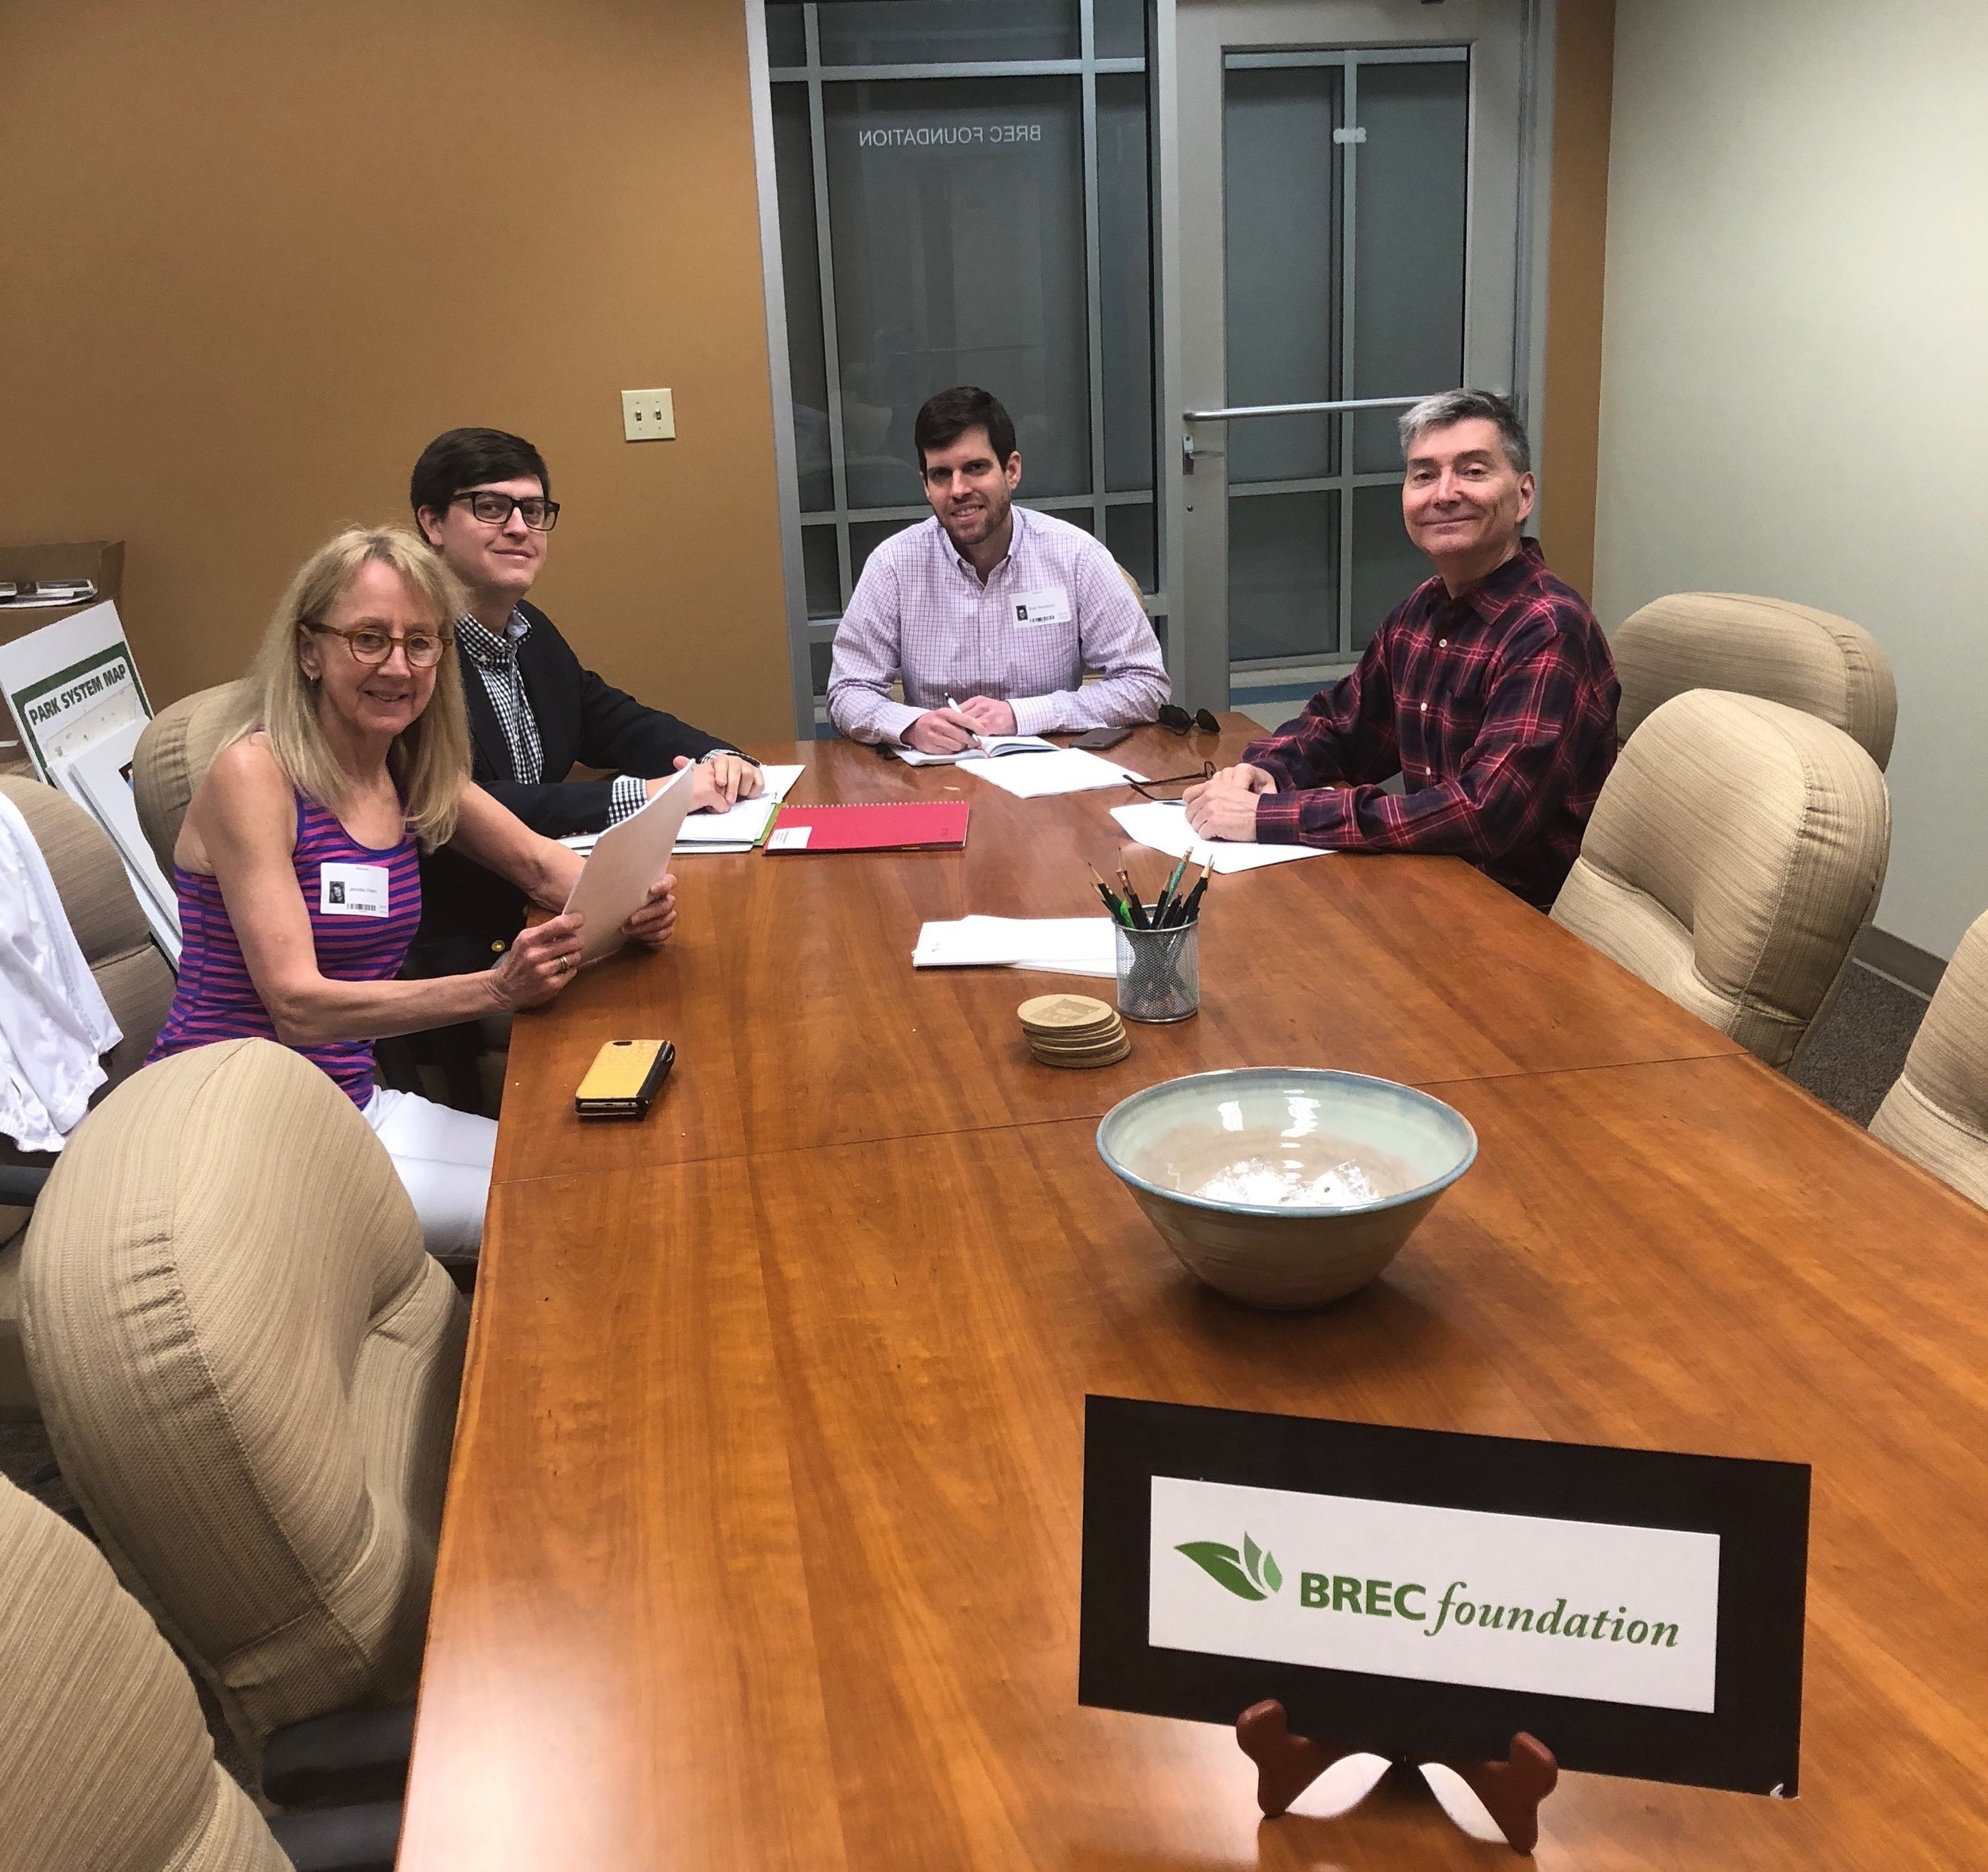 """The BREC Foundation Philanthropy Committee met on January 31, 2018 to review fundraising efforts for the year. Pictured from the left clockwise are Hitesh Chheda, Marcel Dupre, Anne Marks and Carl Stages."""